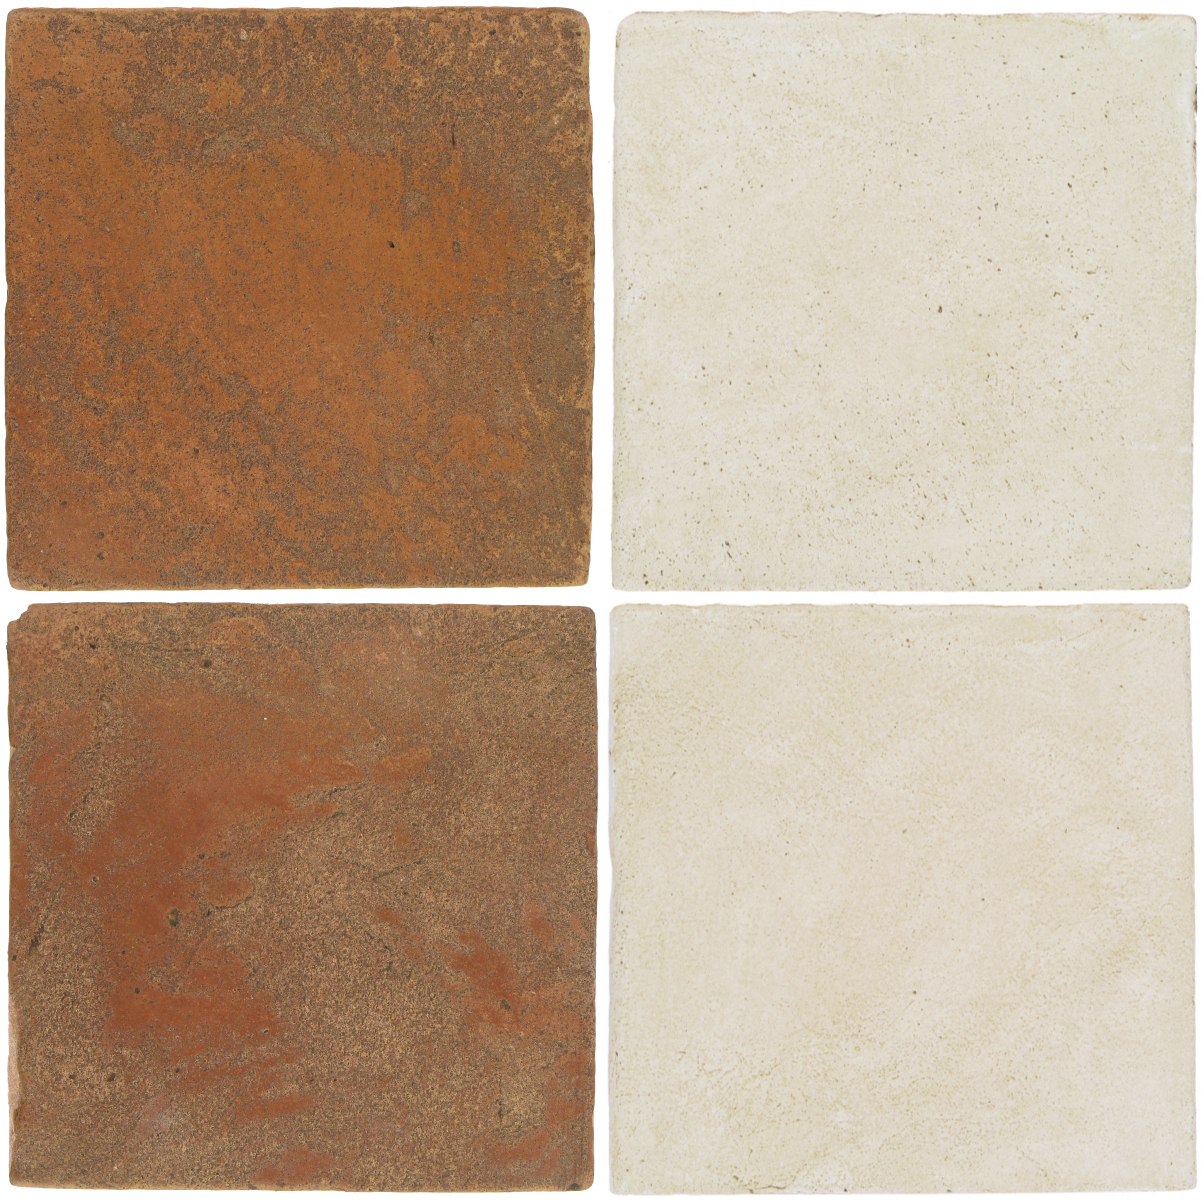 Pedralbes Antique Terracotta  2 Color Combinations  VTG-PSTR Traditional + OHS-PGAW Antique White